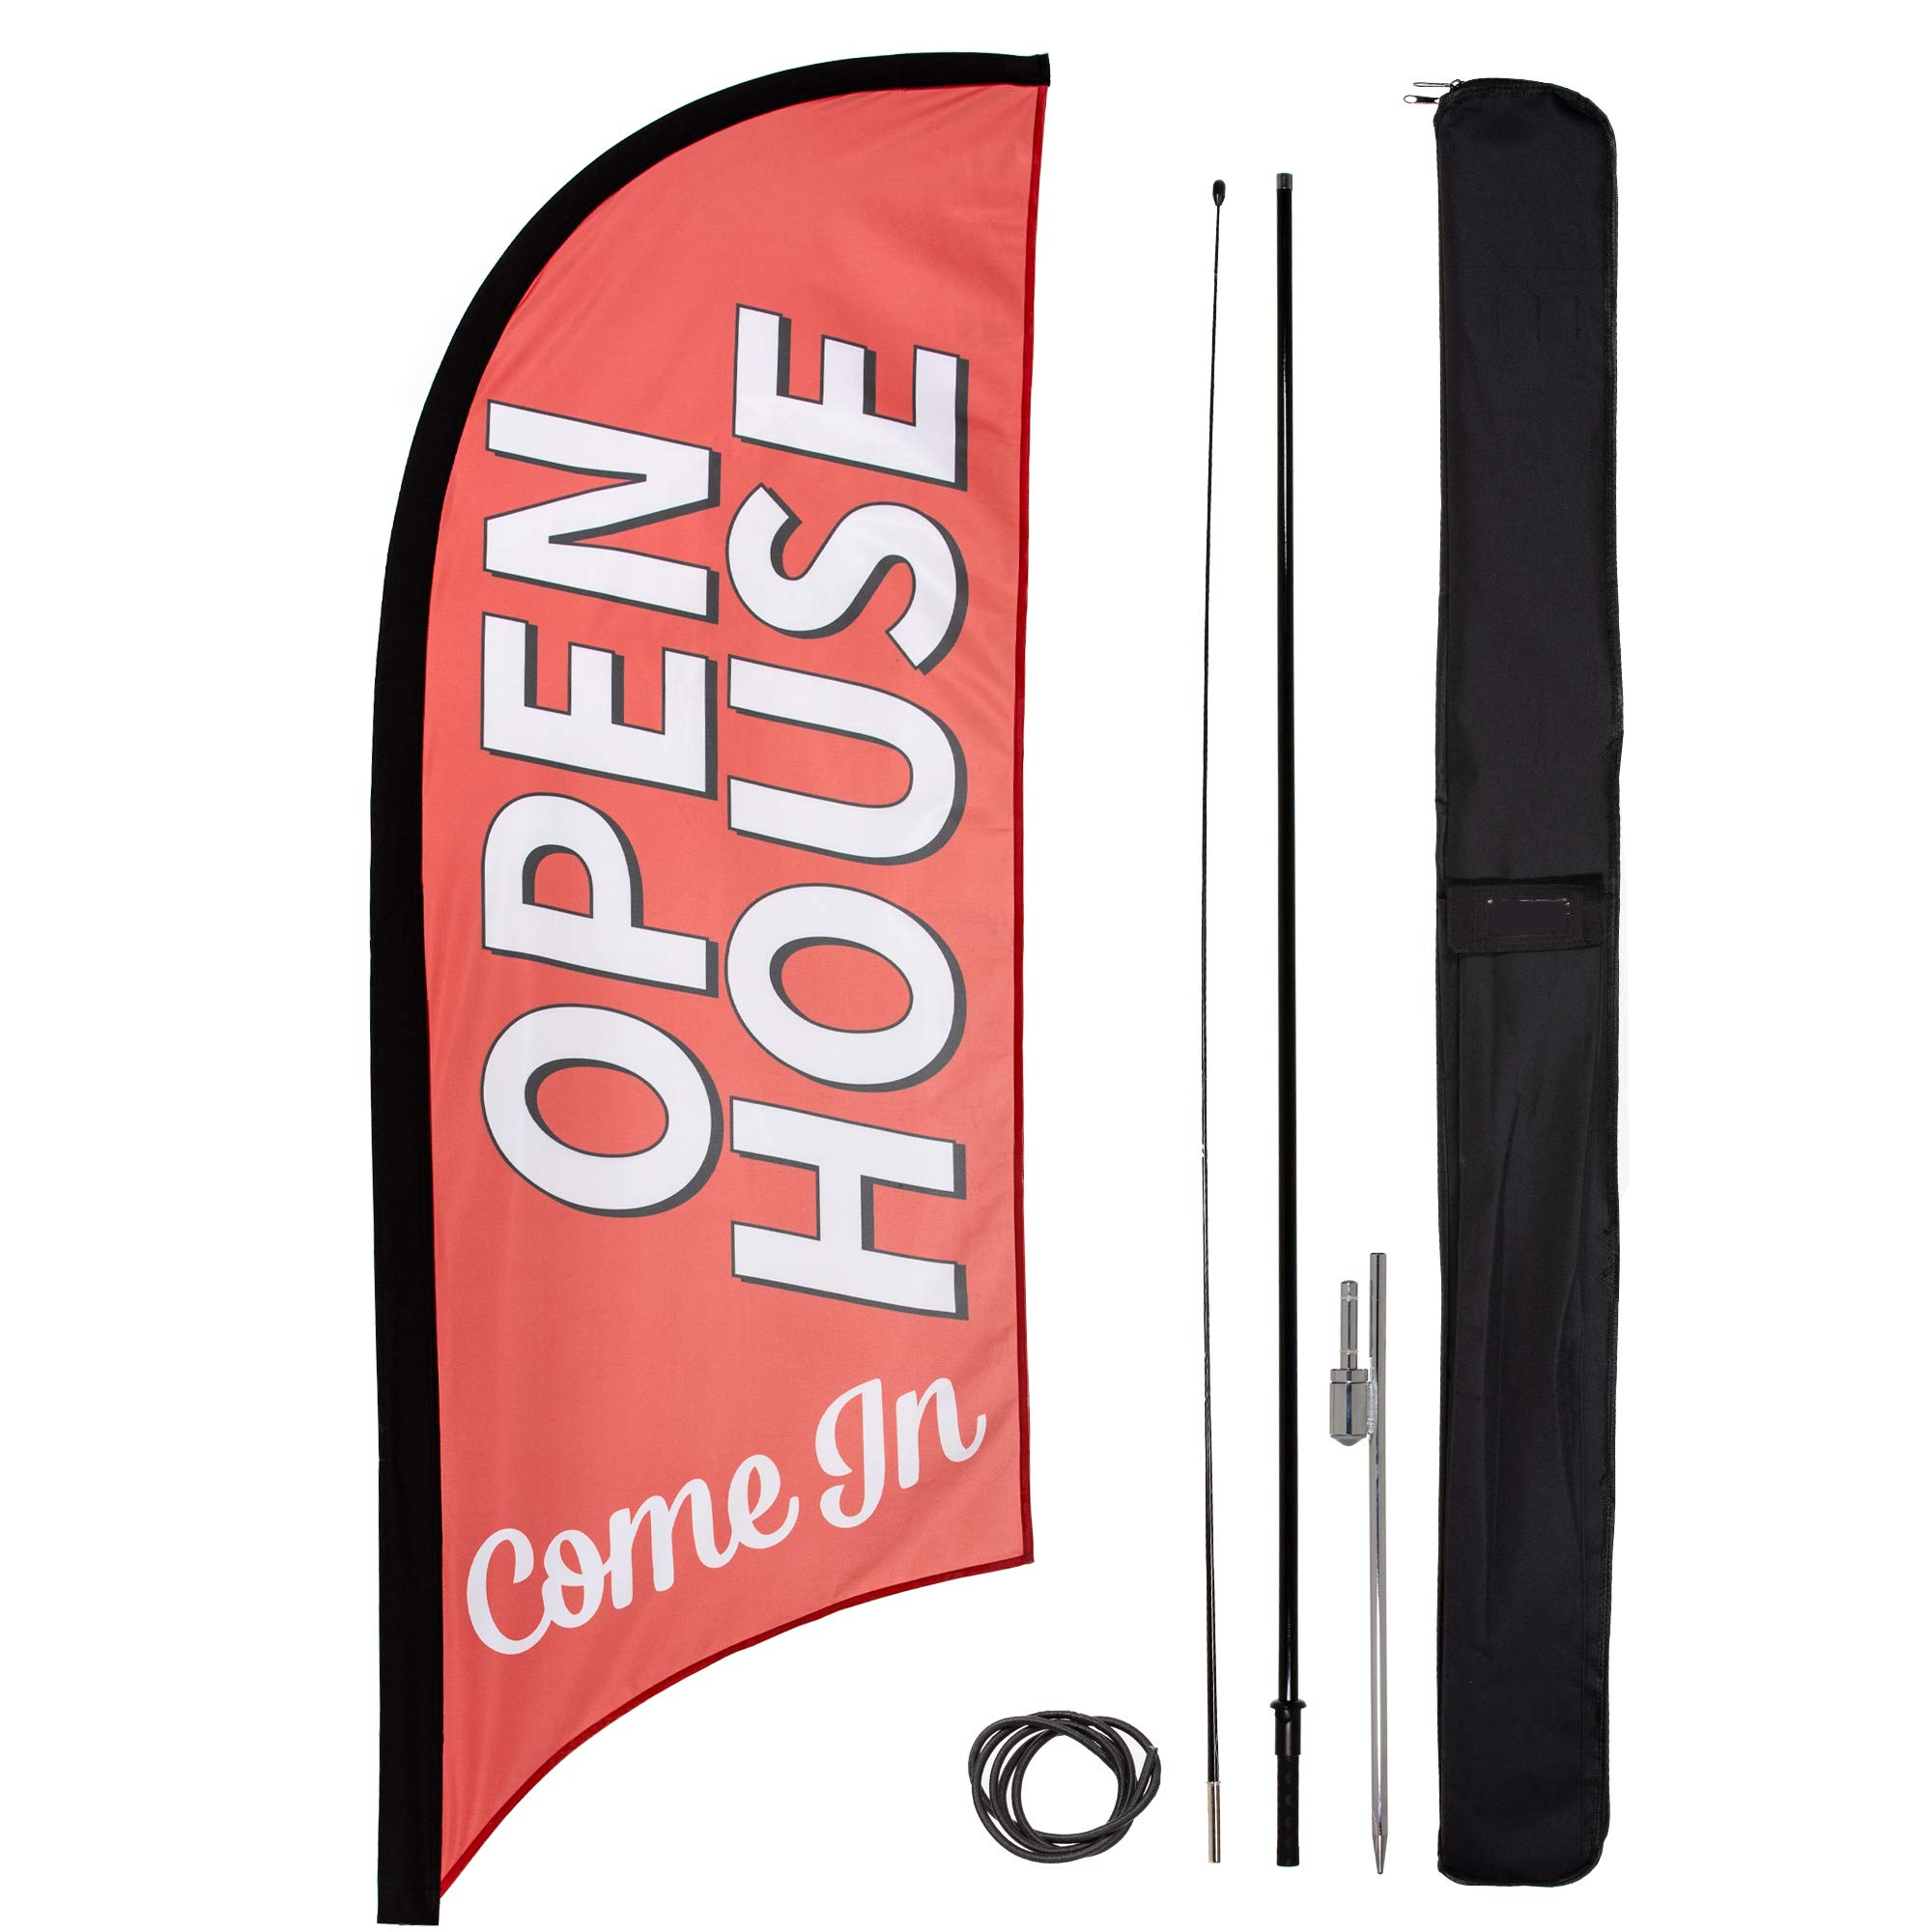 Open House Feather Flag Kit for Real Estate Agents | Includes Carrying Bag, Pole, and Ground Spike | 8 Ft Red Flag